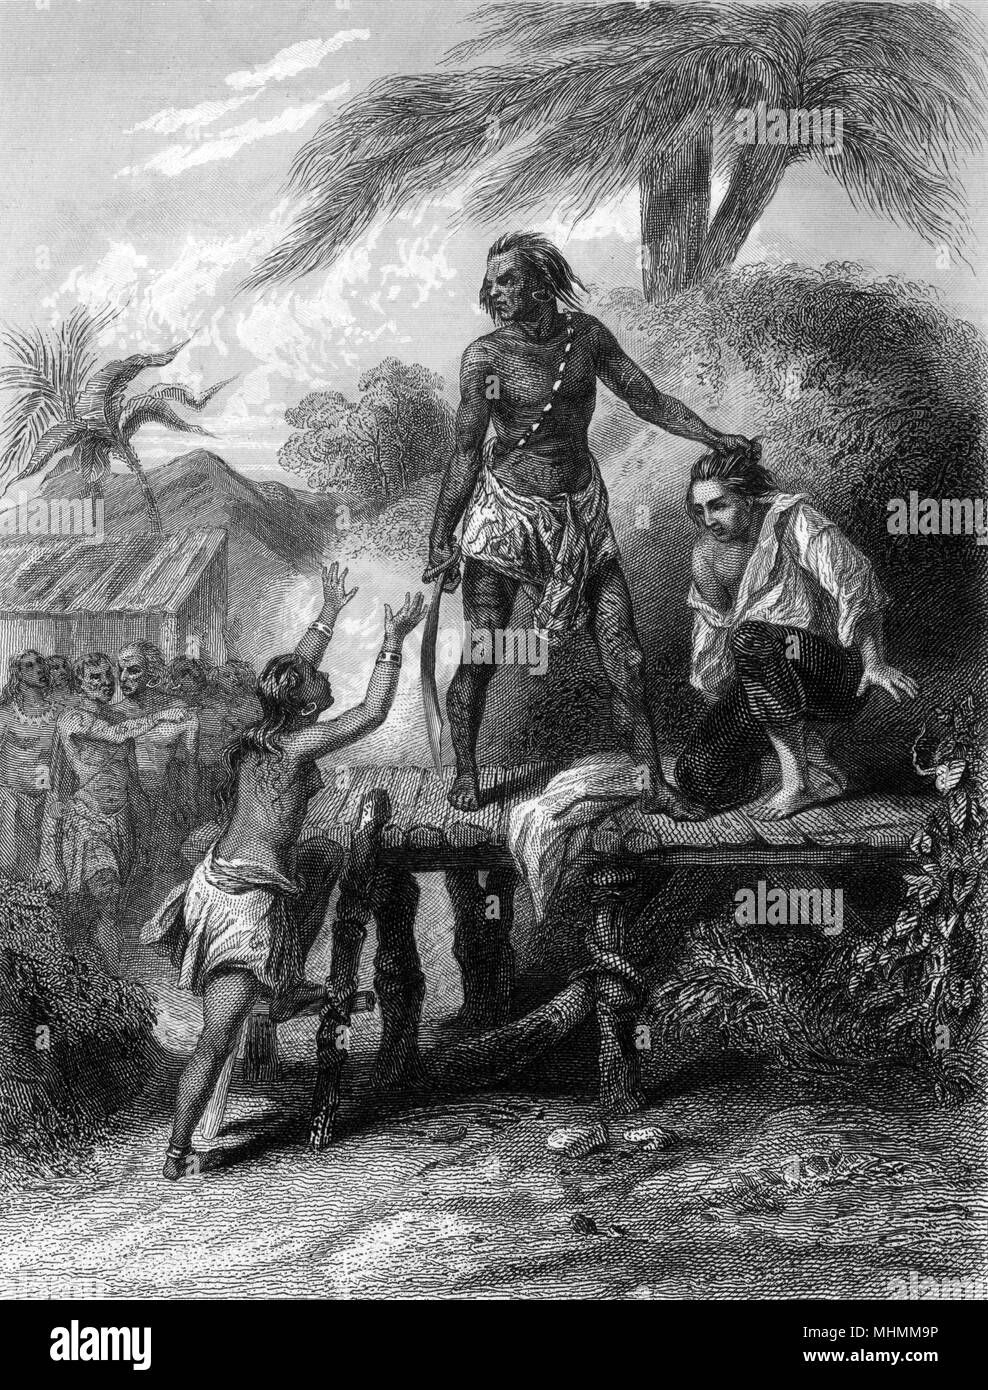 An Englishman named Boulton is about to be beheaded by a native of Borneo when a young native girl intercedes on his behalf - doubtless there's a romantic tale associated...     Date: probably 18th century - Stock Image